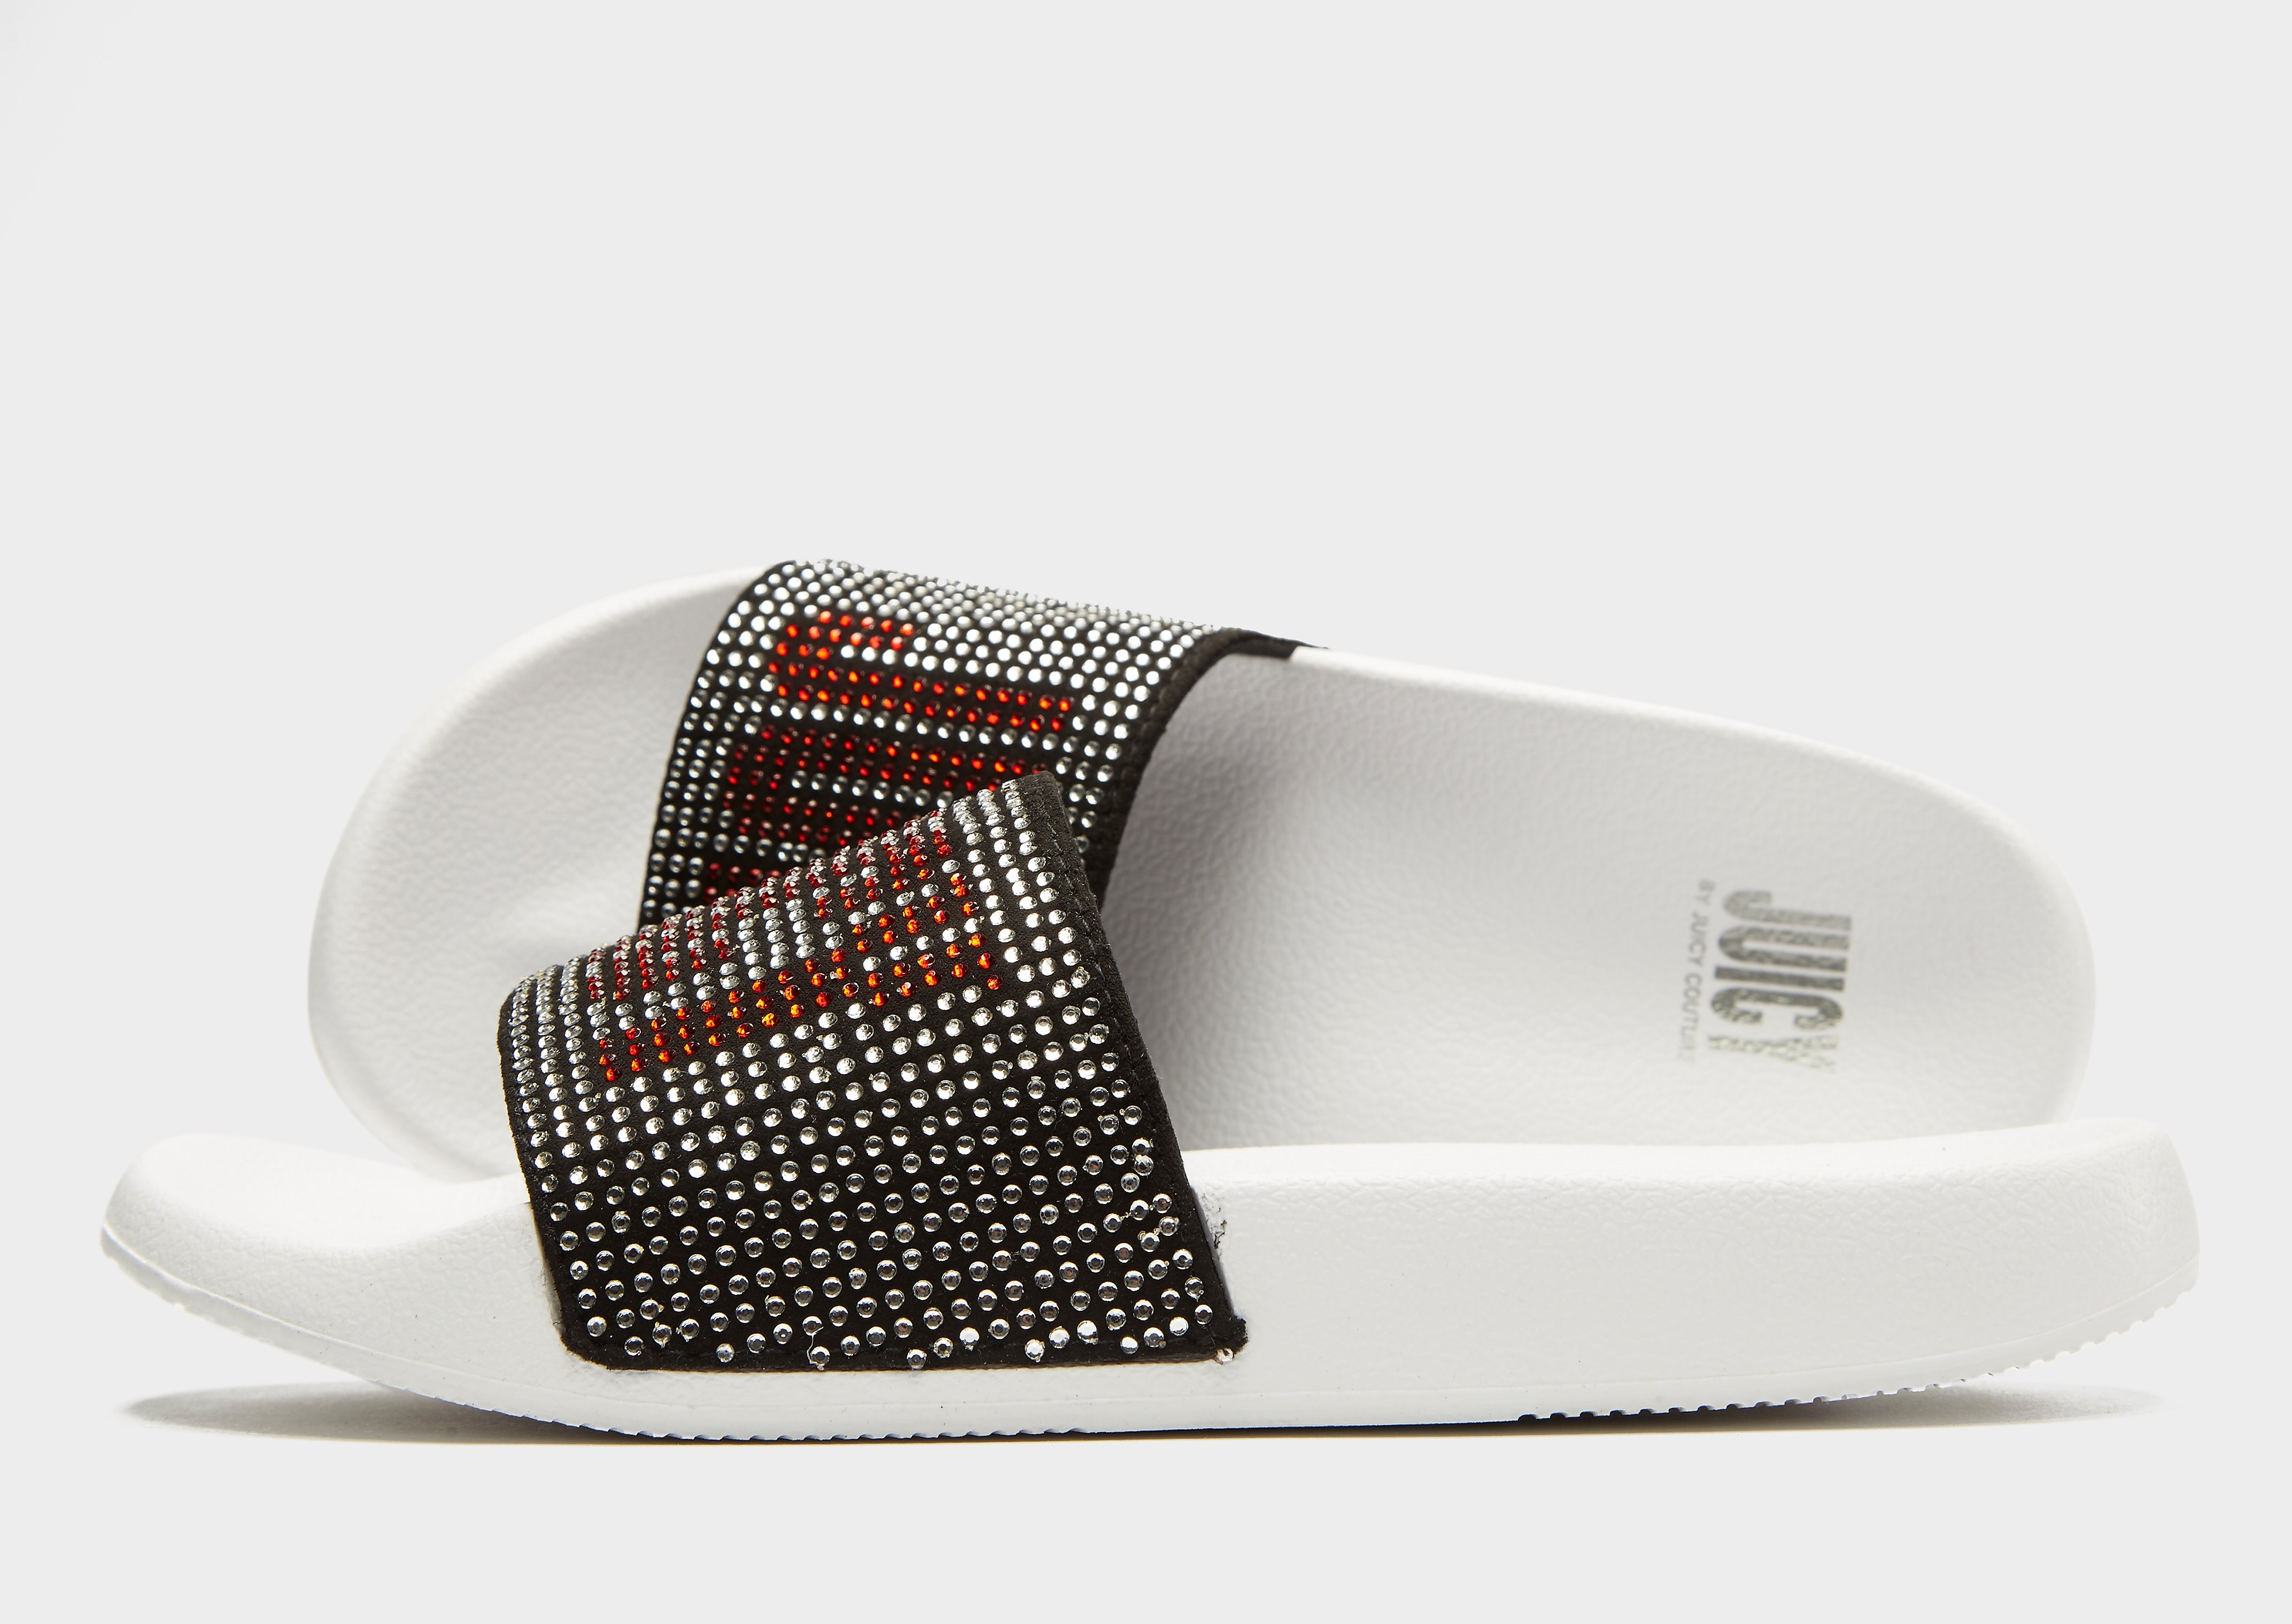 Juicy Couture Marian Slides